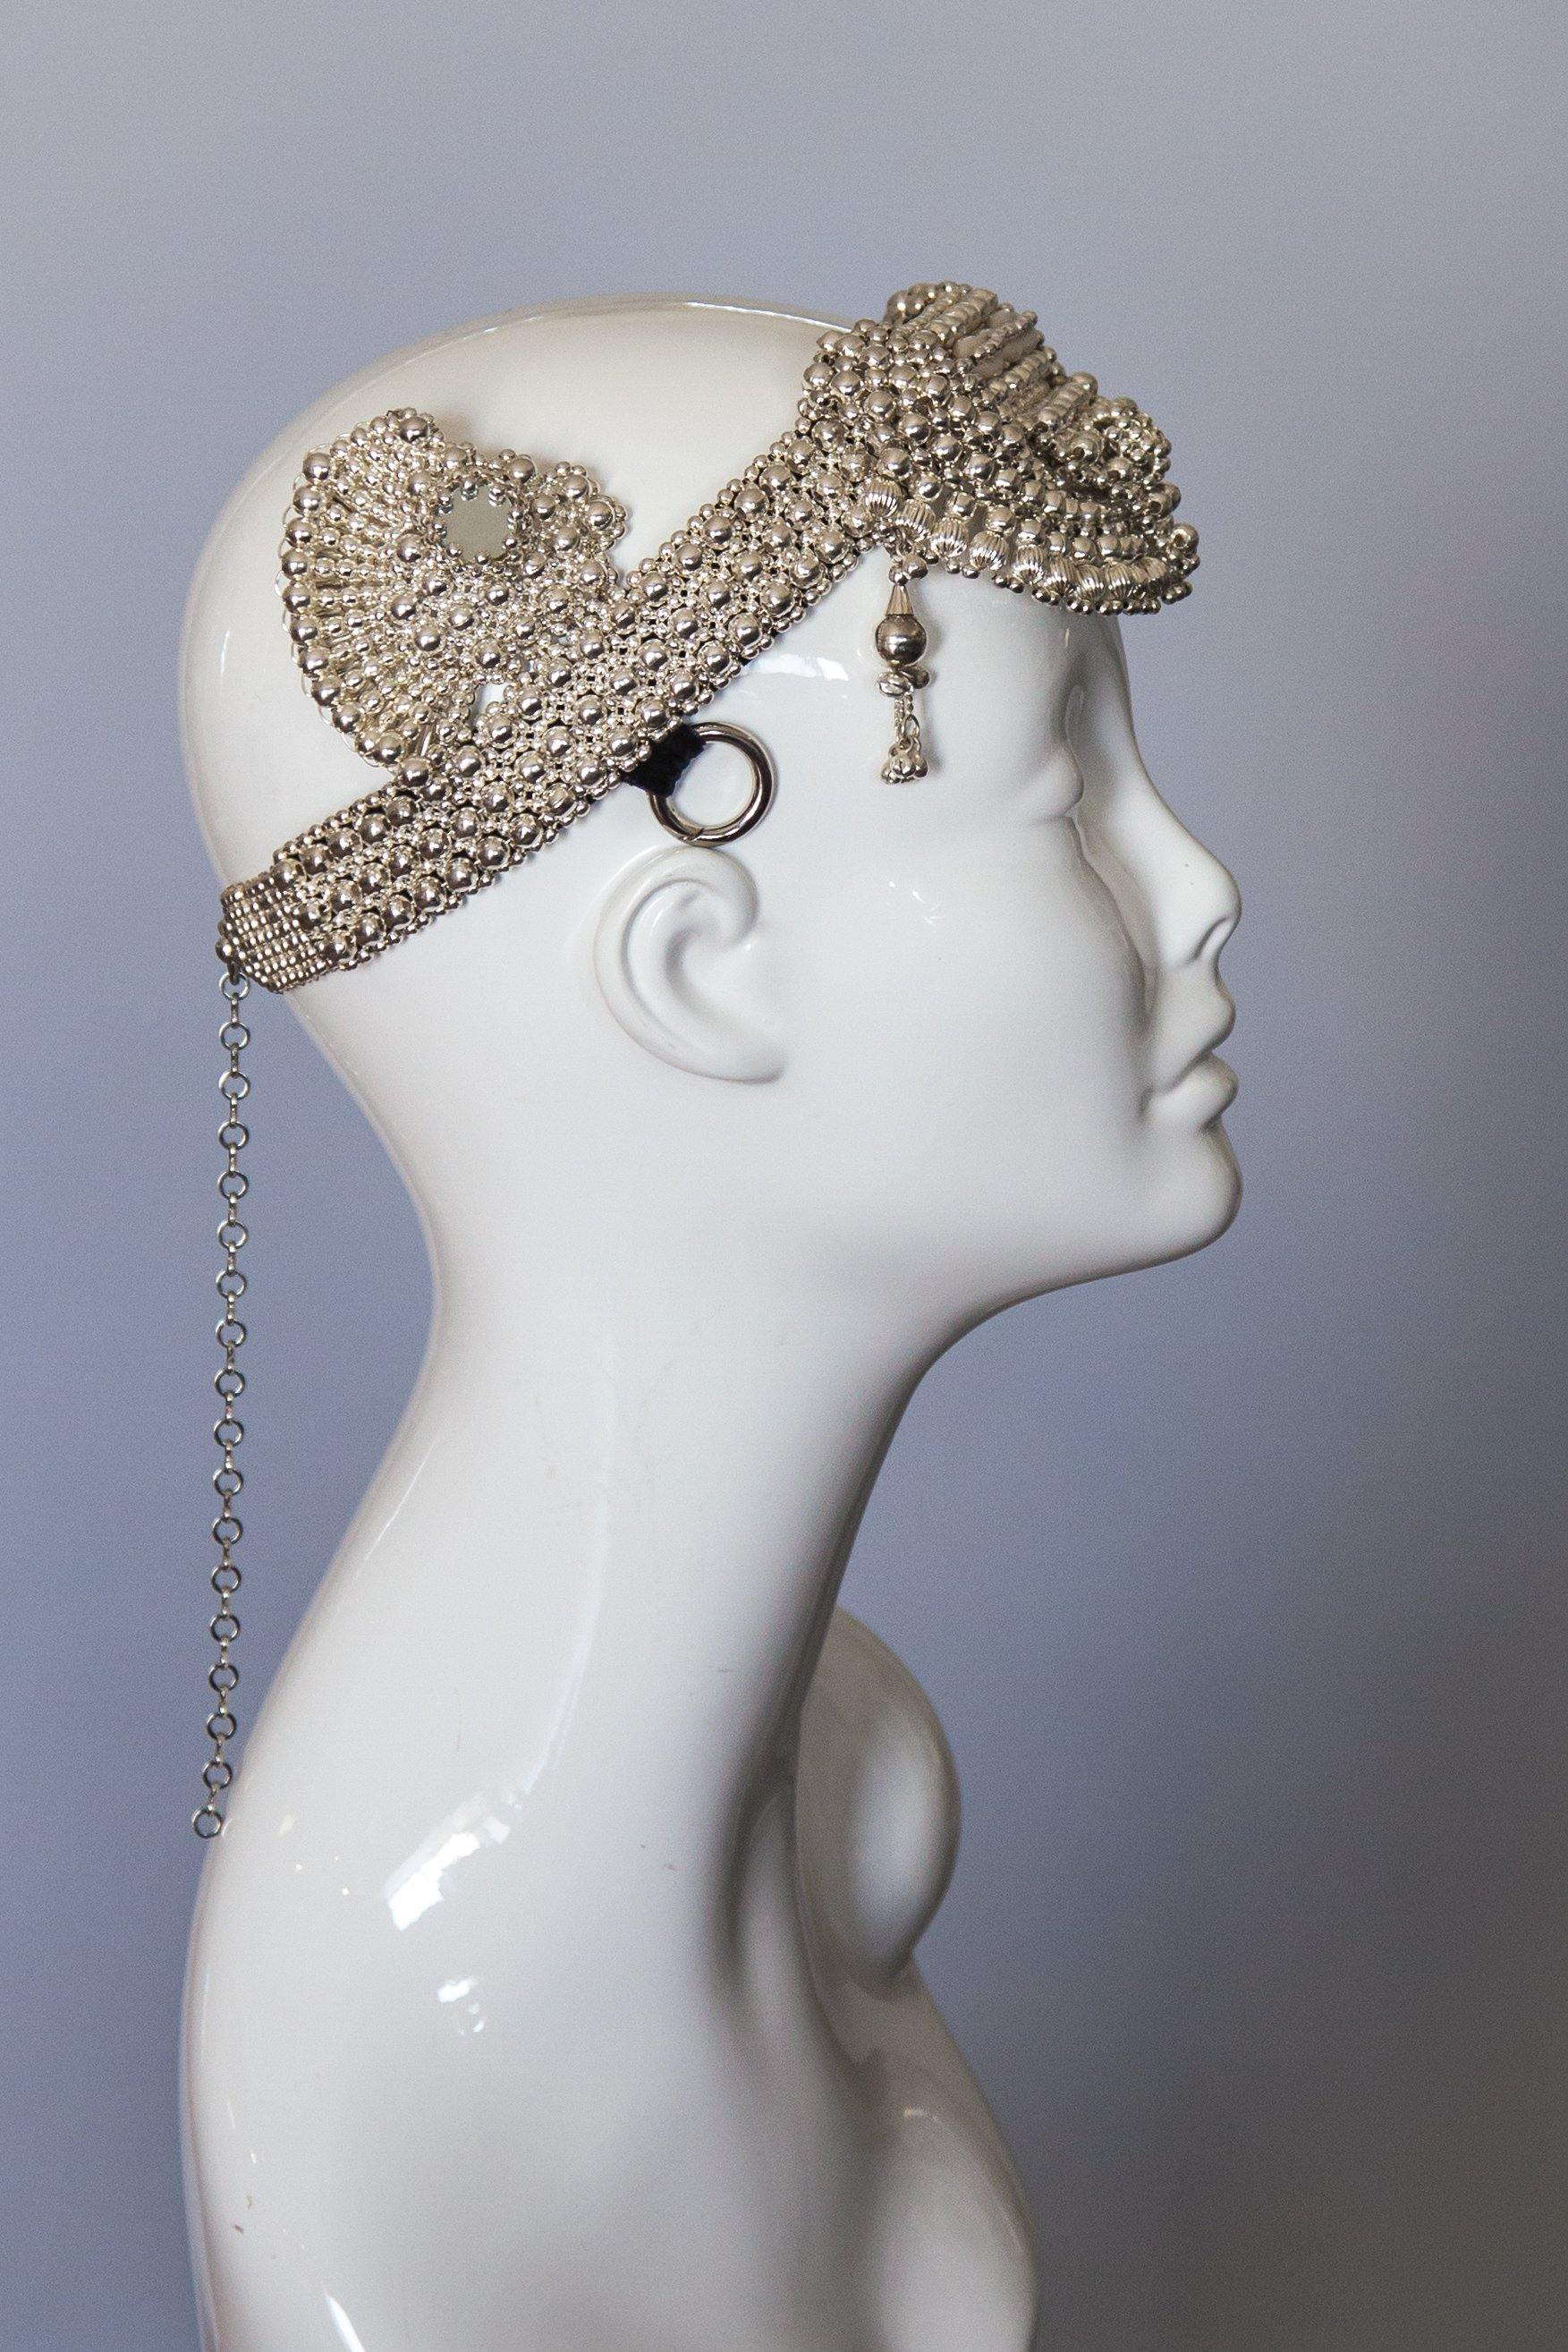 Anais Modular Headpiece System- Stainless Steel